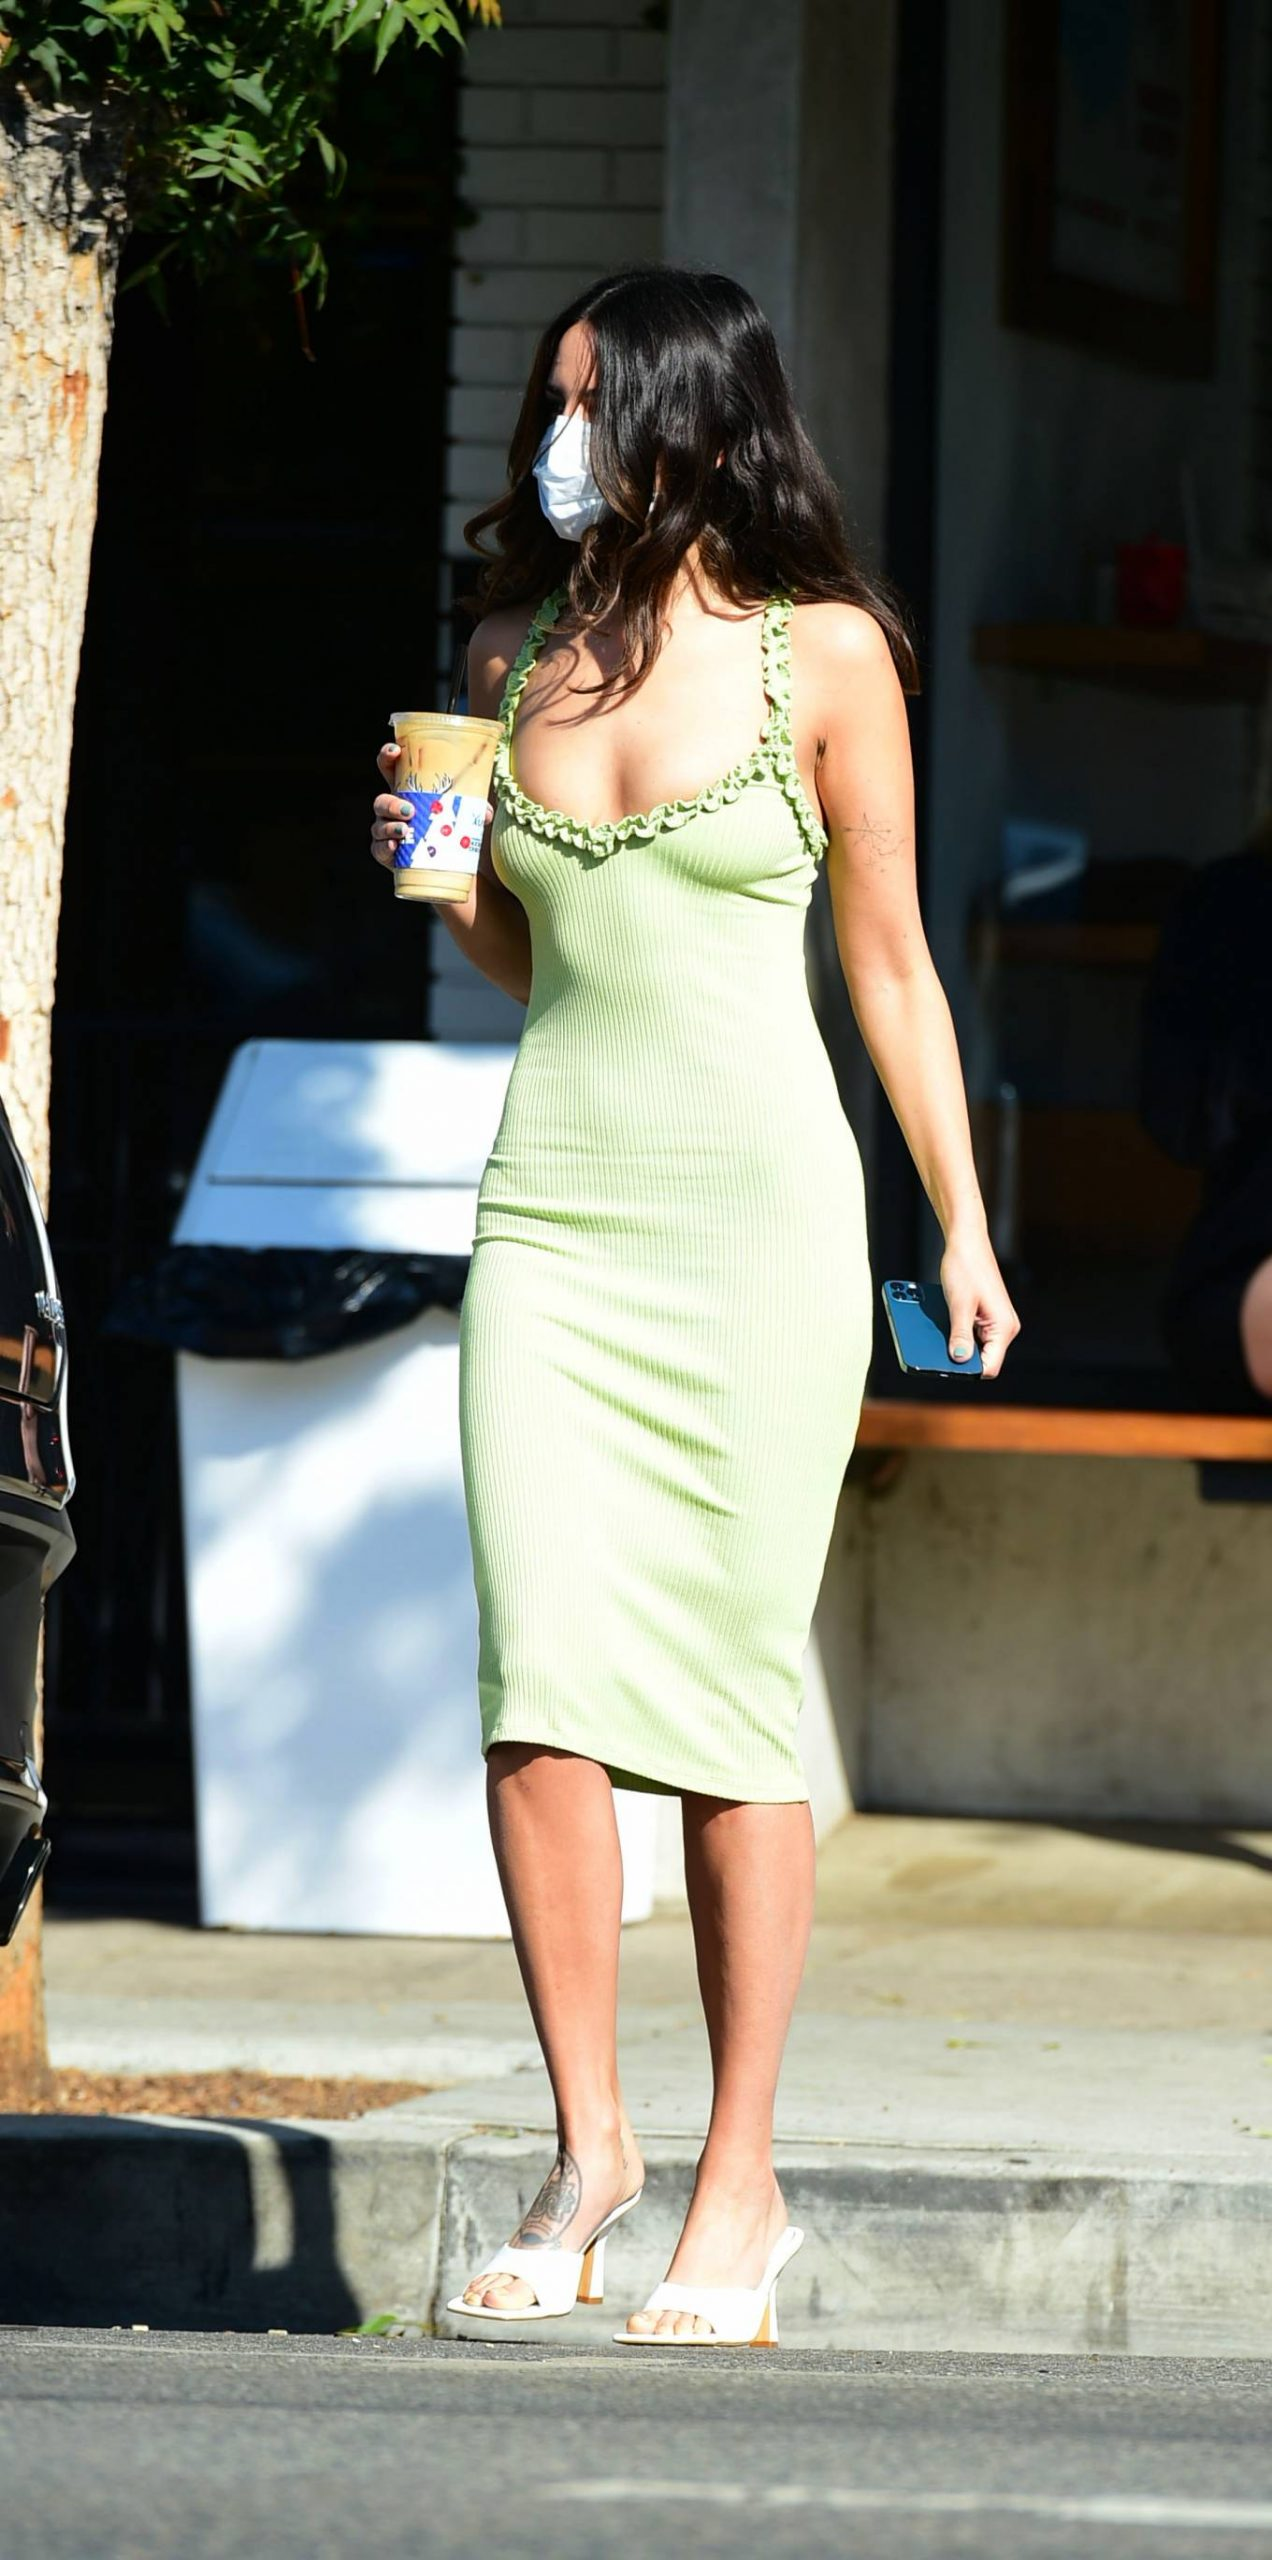 Eiza Gonzalez - In tight dress out in West Hollywood